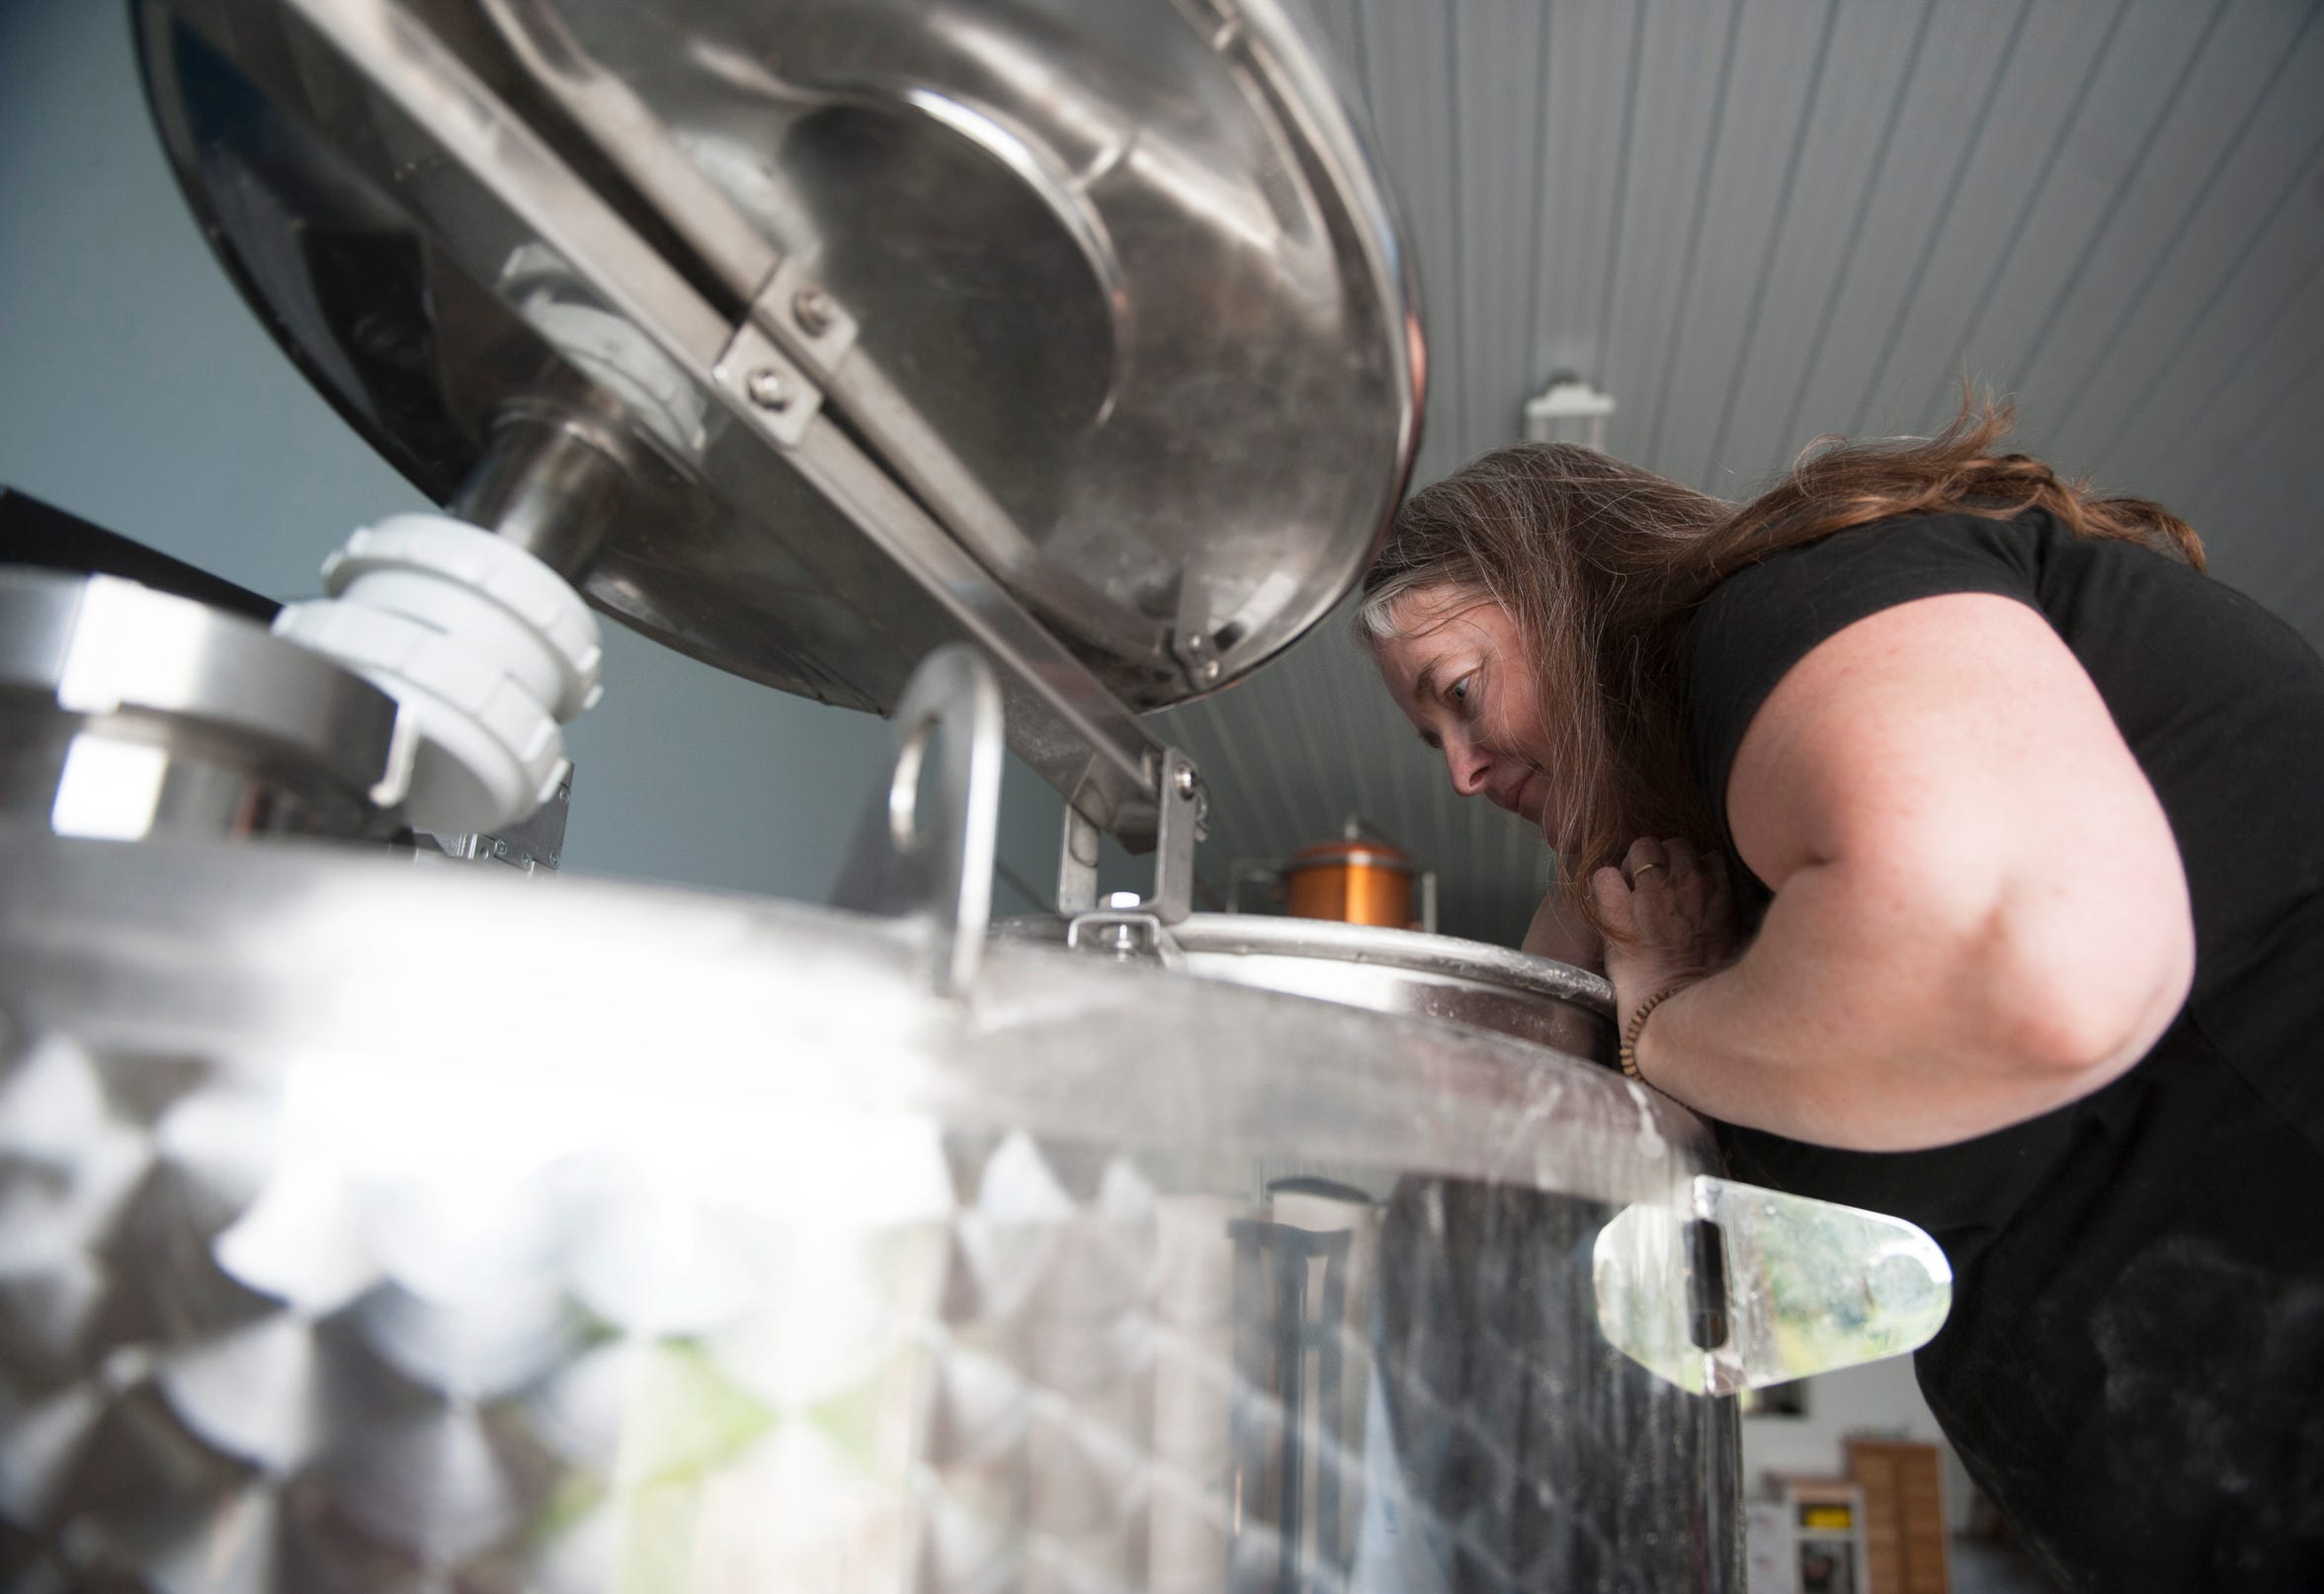 Kerry Thomsen, owner of Independent Spirits Distillery, checks on a batch of whiskey mash in her Woolwich Township distillery.